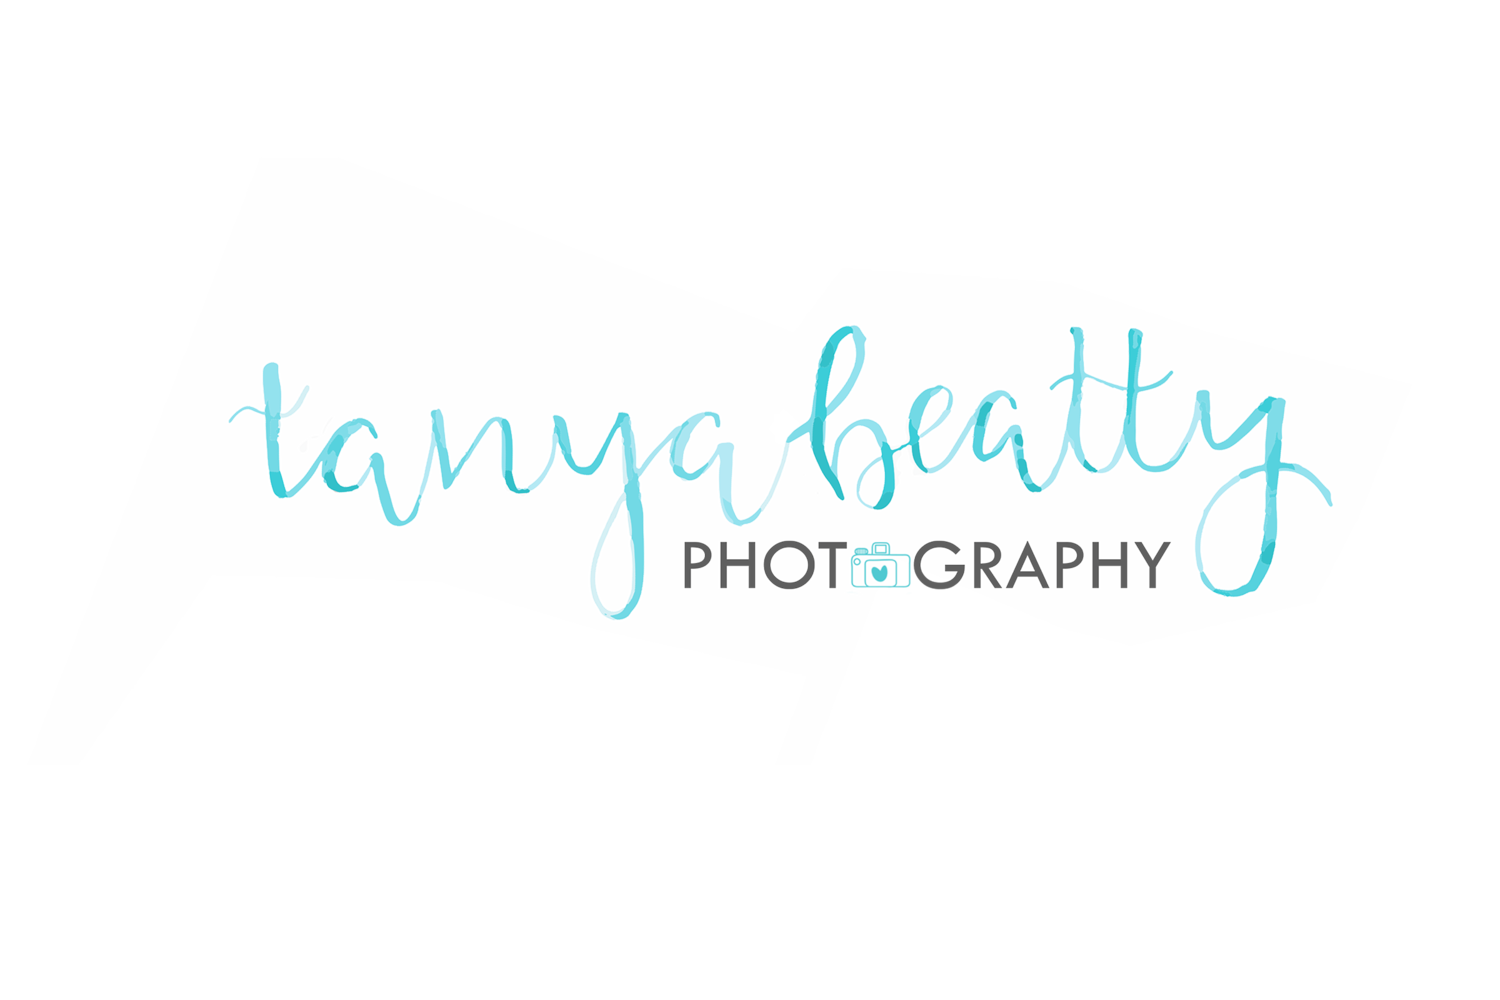 Tanya Beatty Photography